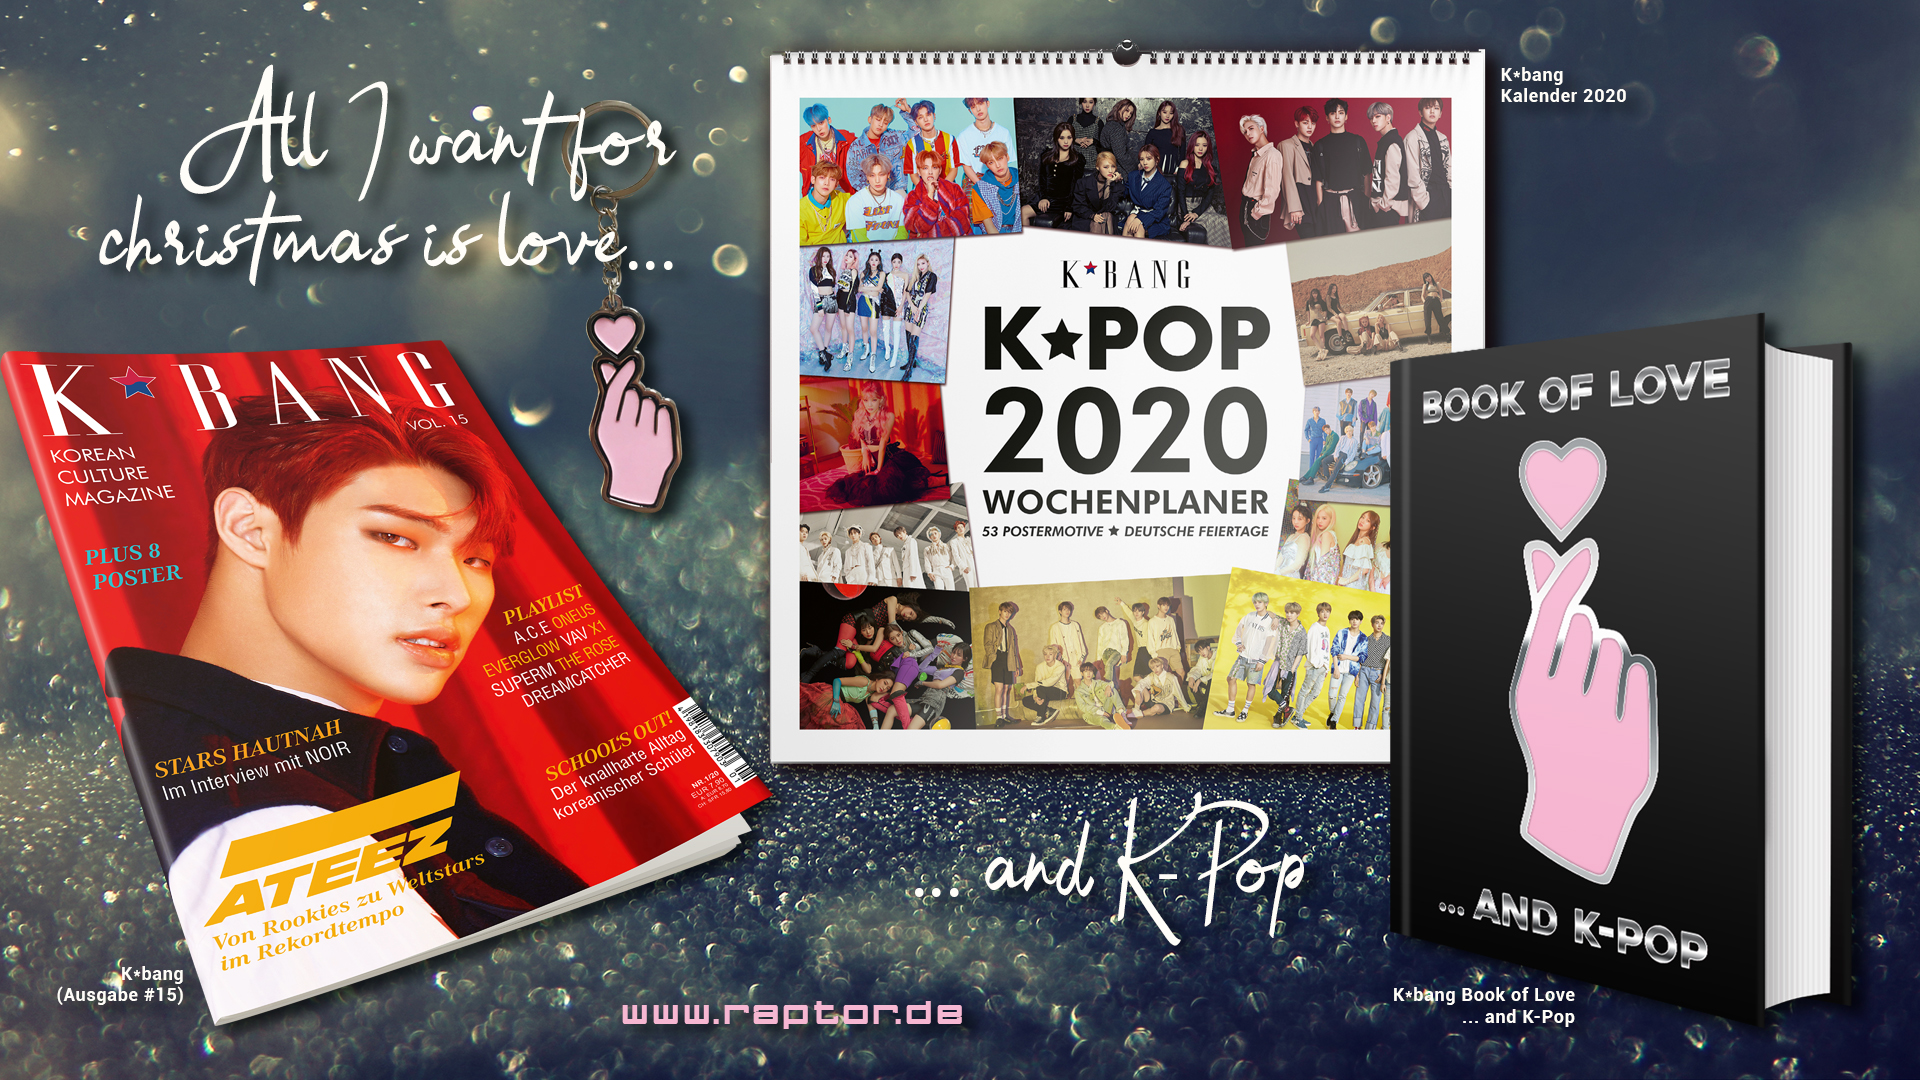 All I want for christmas is love ... and K-Pop